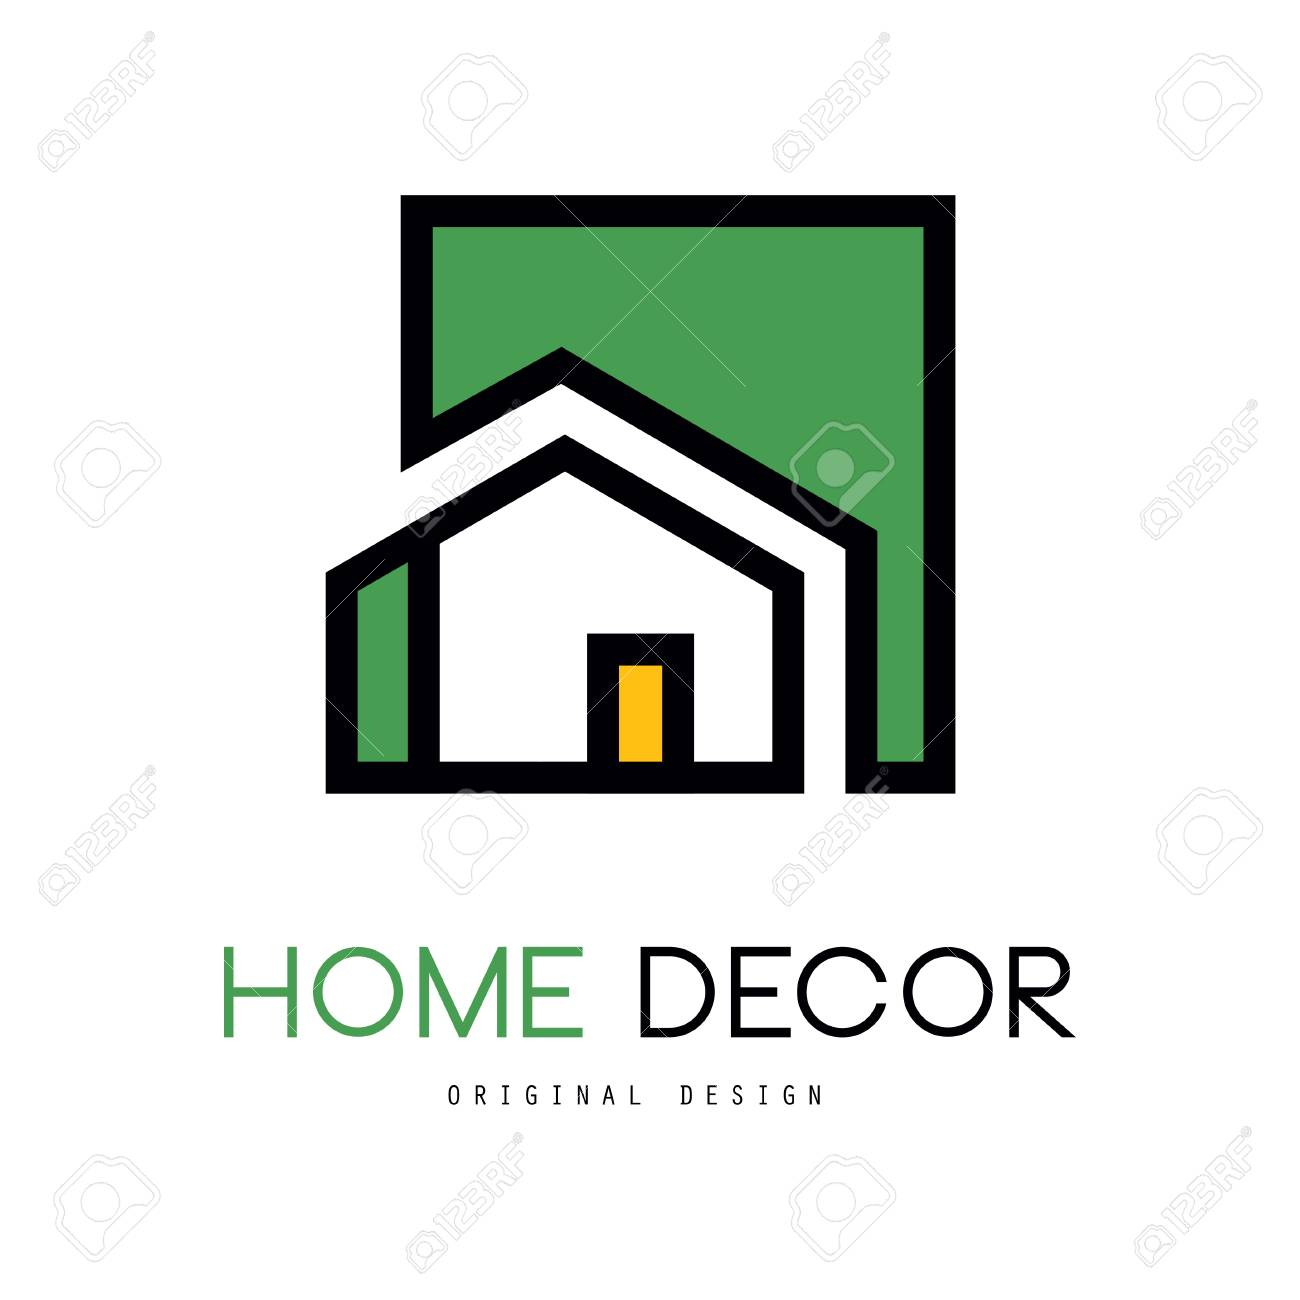 Geometric Logo Template With Abstract Building Original Linear Royalty Free Cliparts Vectors And Stock Illustration Image 98702181